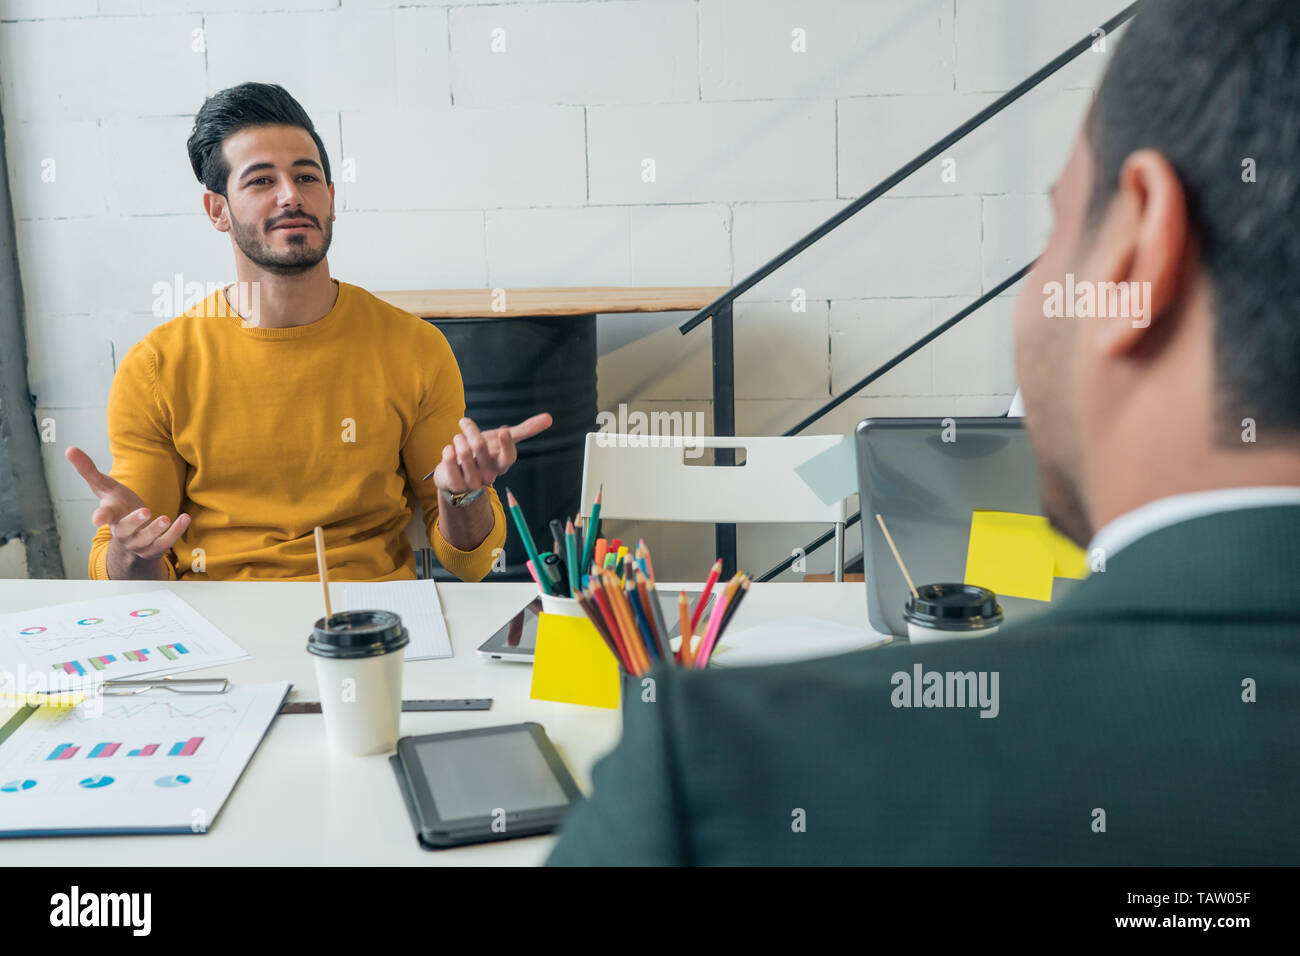 A young man is interviewed for a job. Guy's talking to his boss in the office. Business communication. Stock Photo